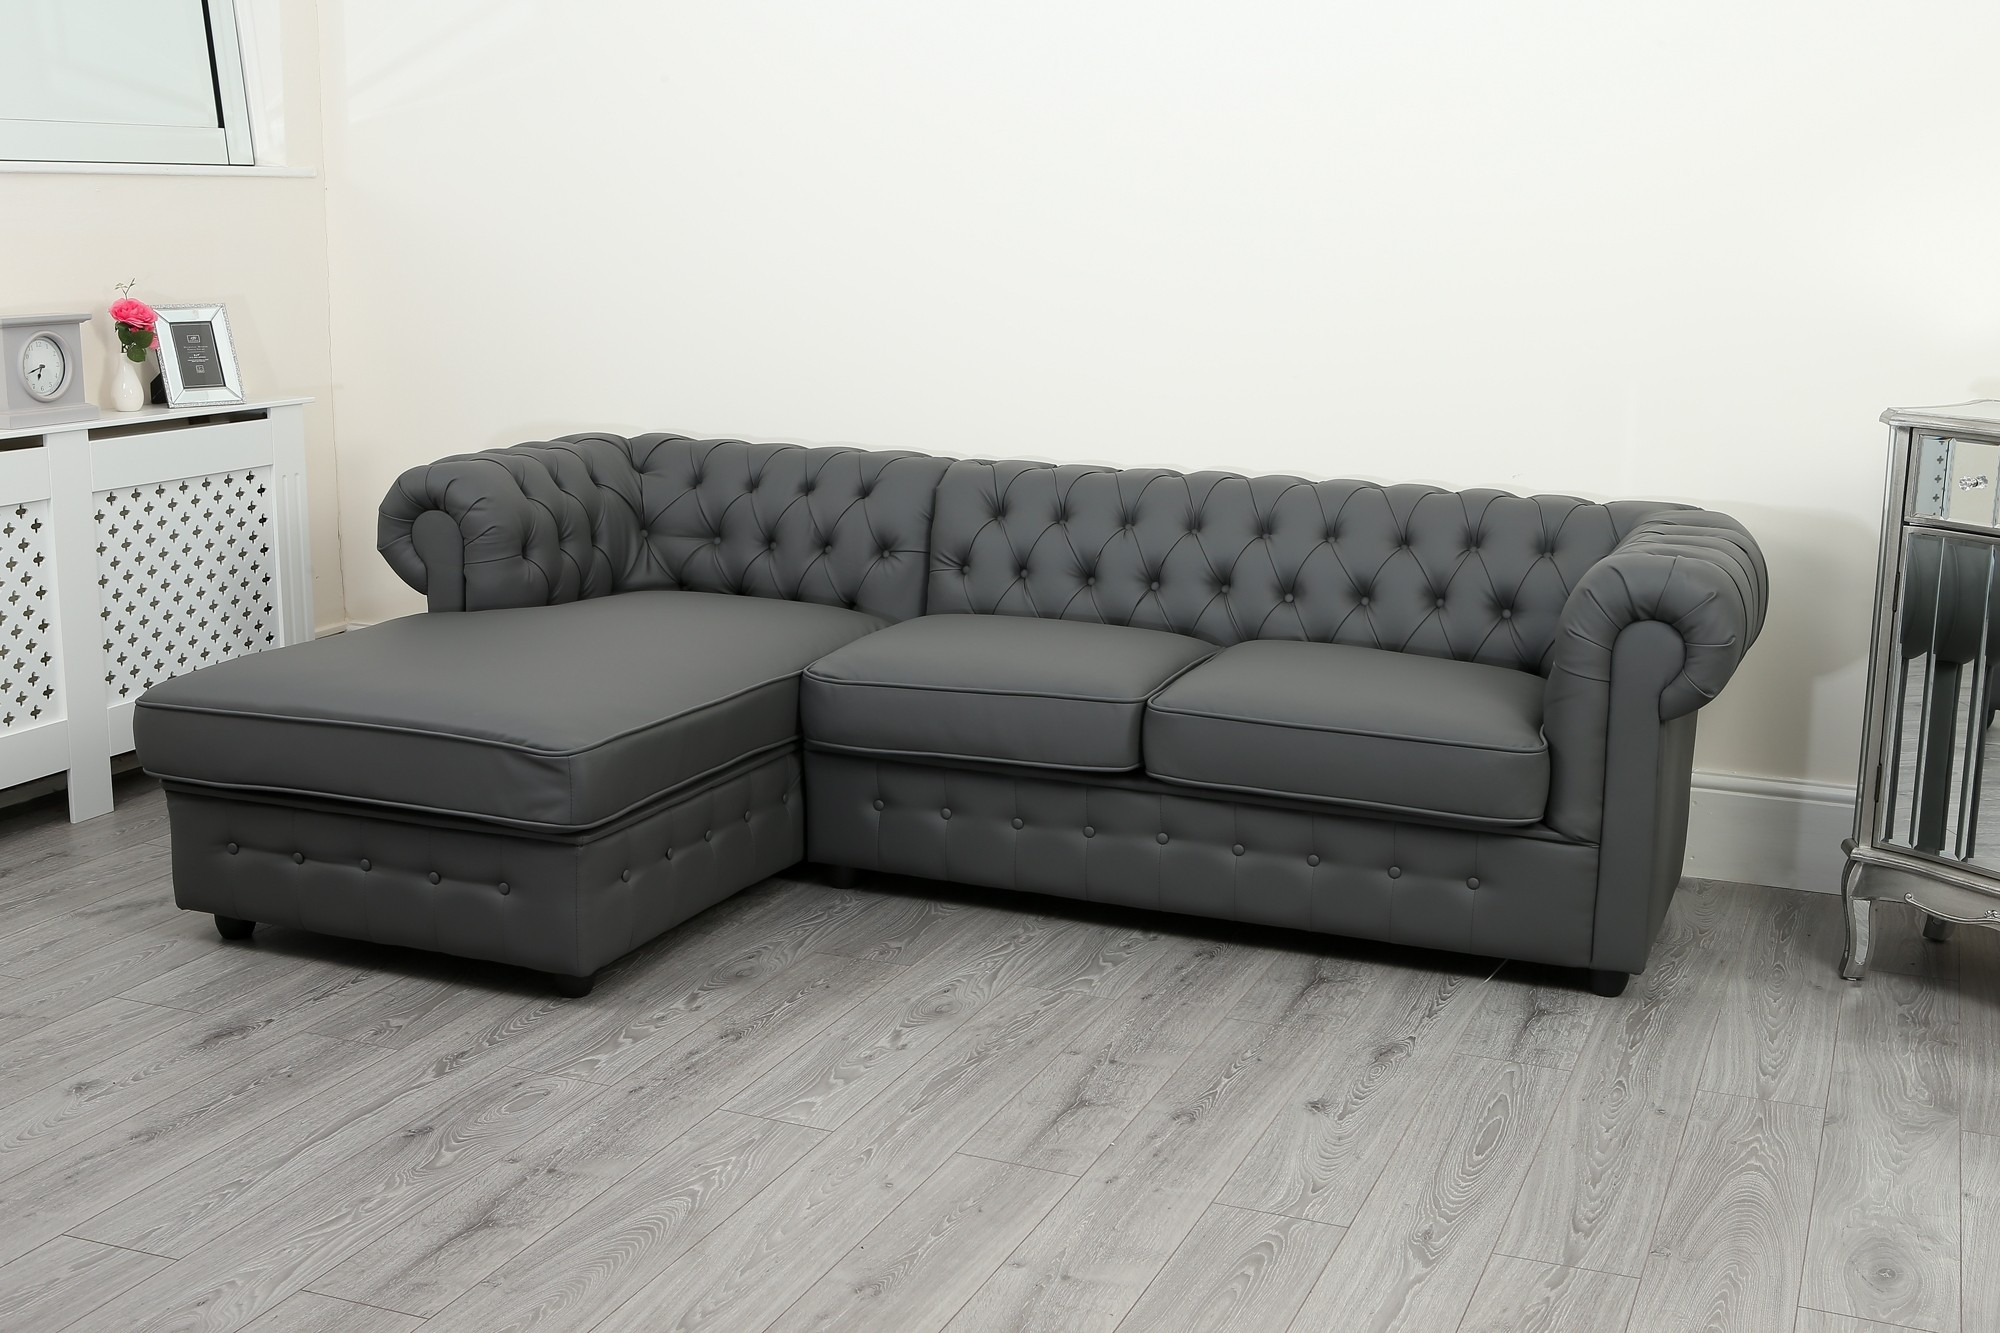 empire chesterfield corner sofa bed in grey pu leather. Black Bedroom Furniture Sets. Home Design Ideas